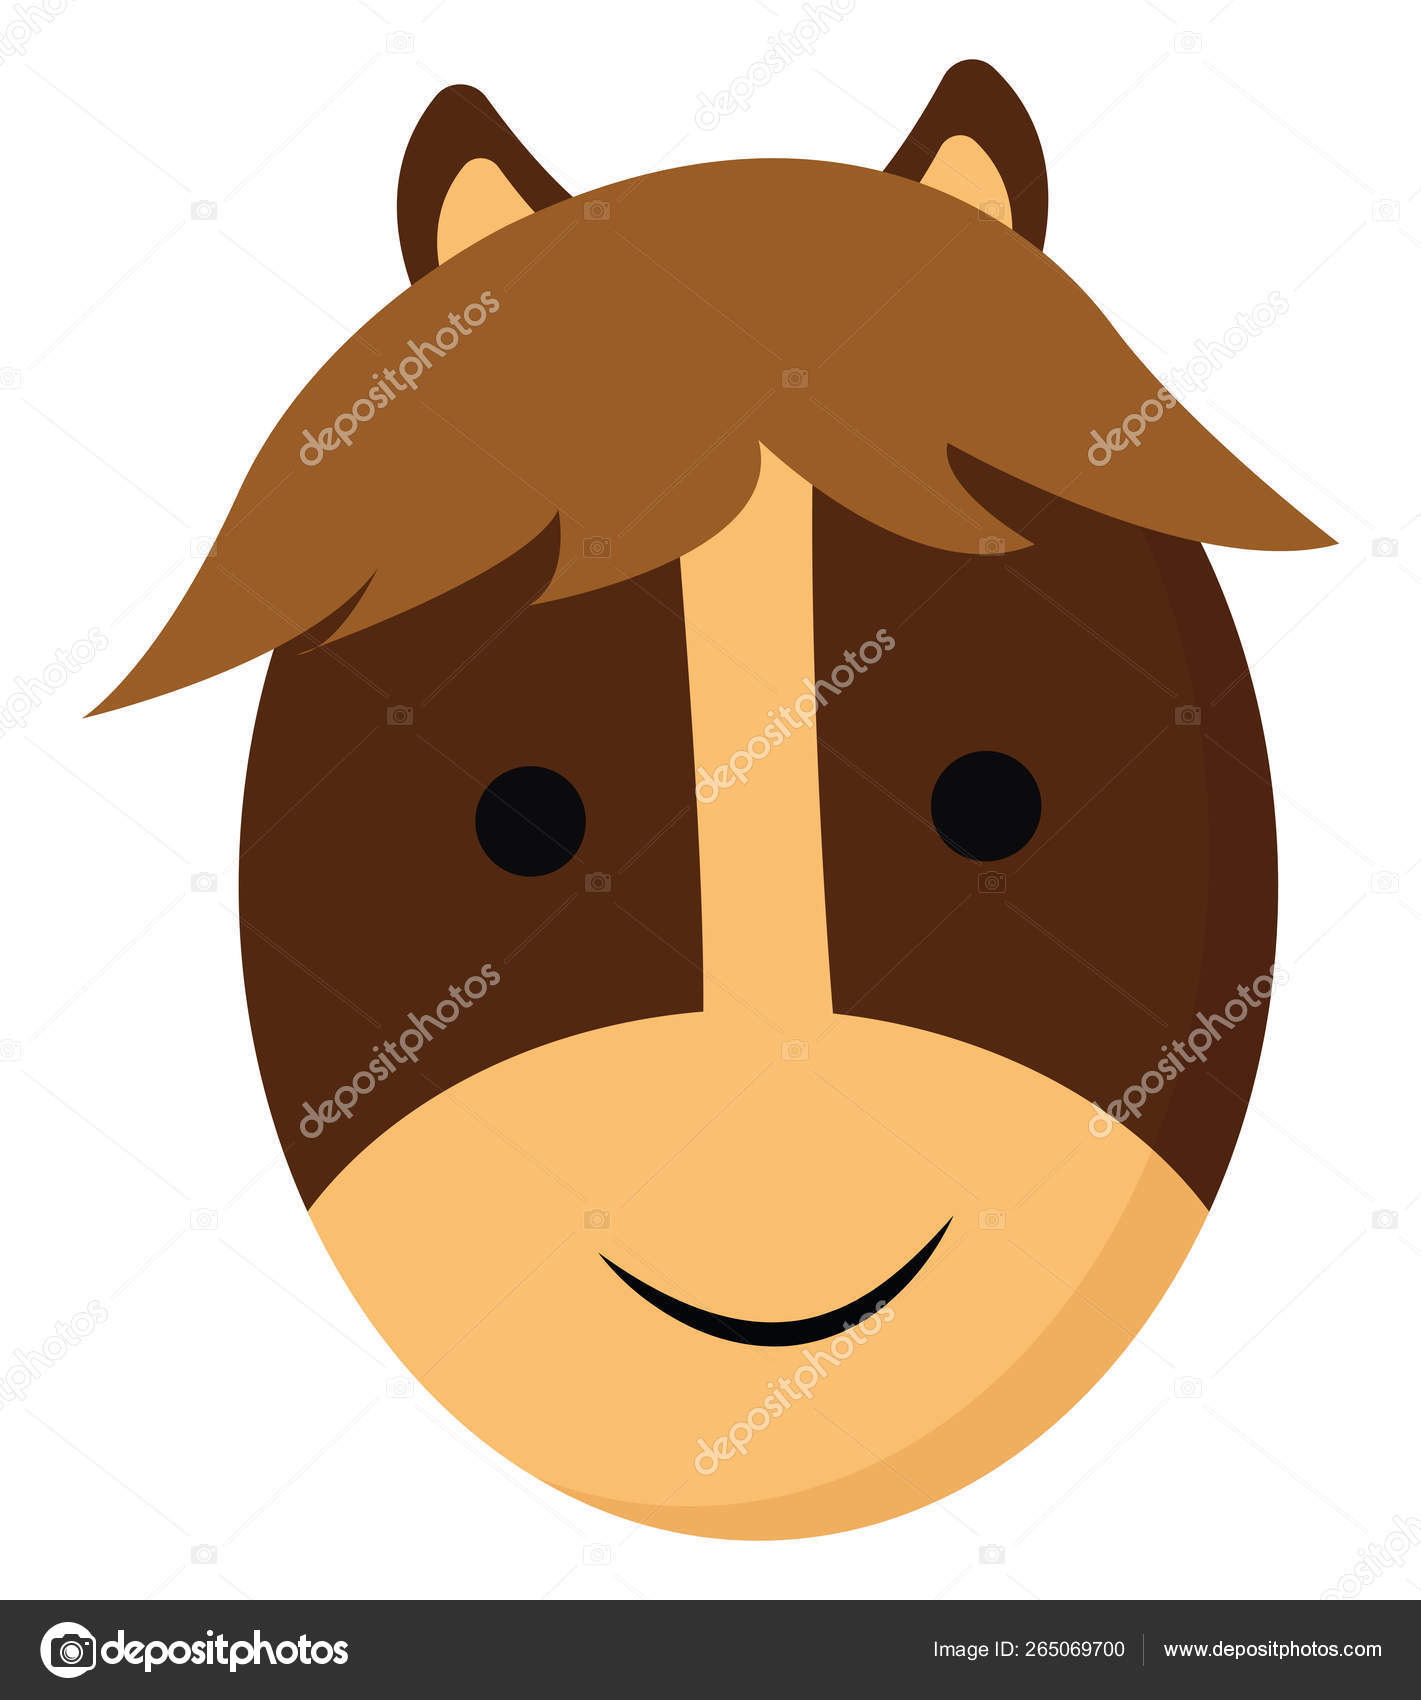 Cartoon Smiling Face Of A Brown Horse Vector Or Color Illustrati